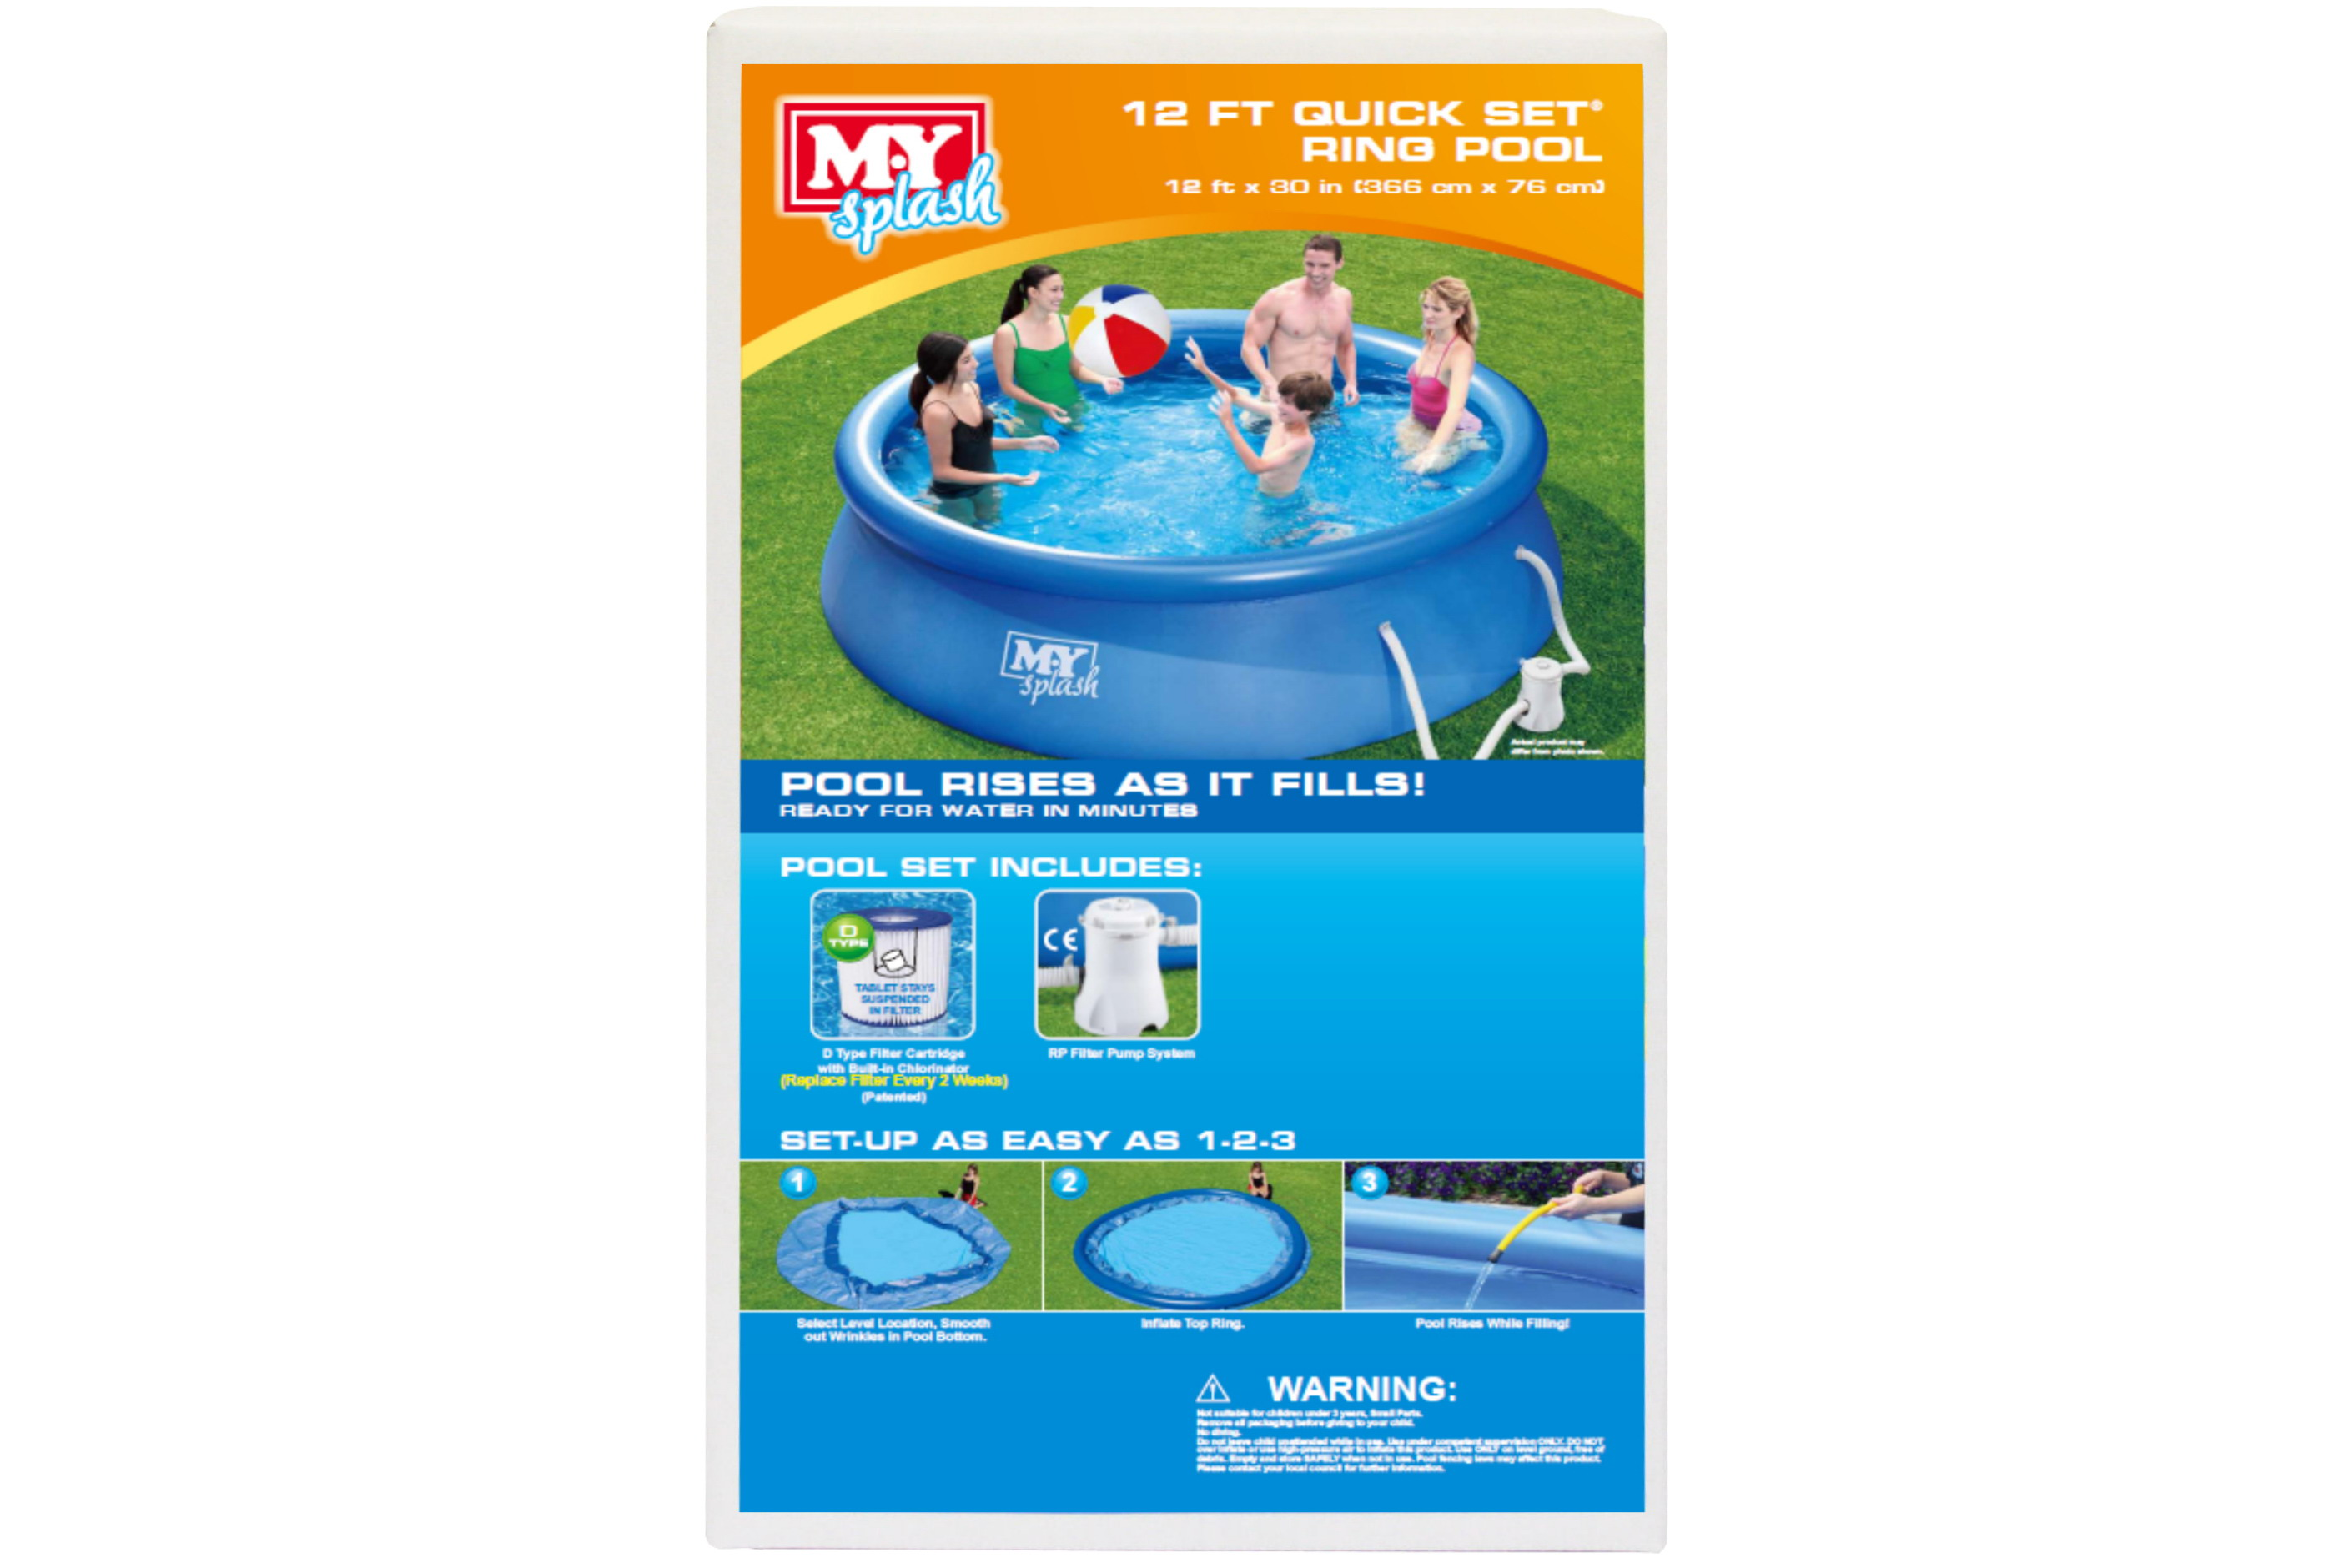 """12' x 30"""" Quick Set Ring Pool With Filter Pump"""